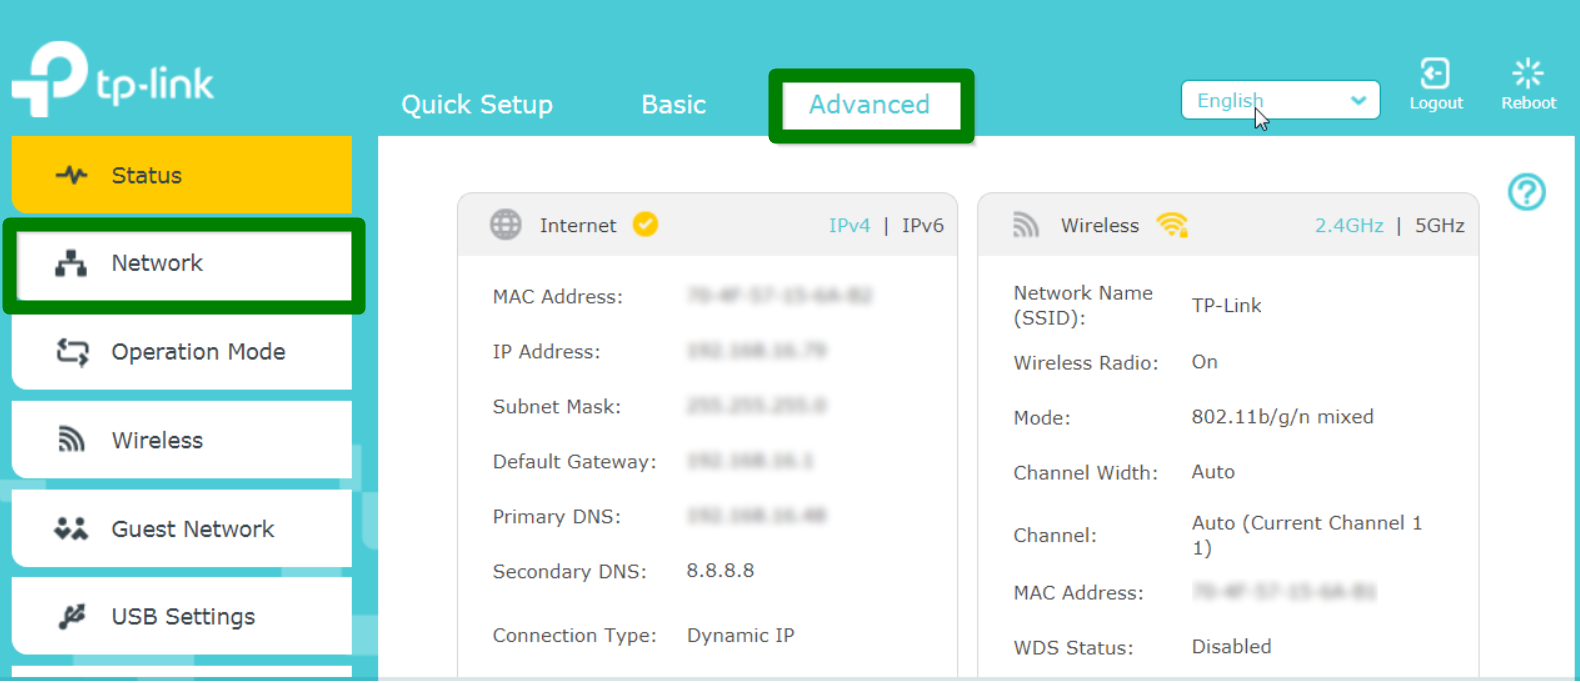 Screenshot of Advanced Network Settings screen for TP-Link router